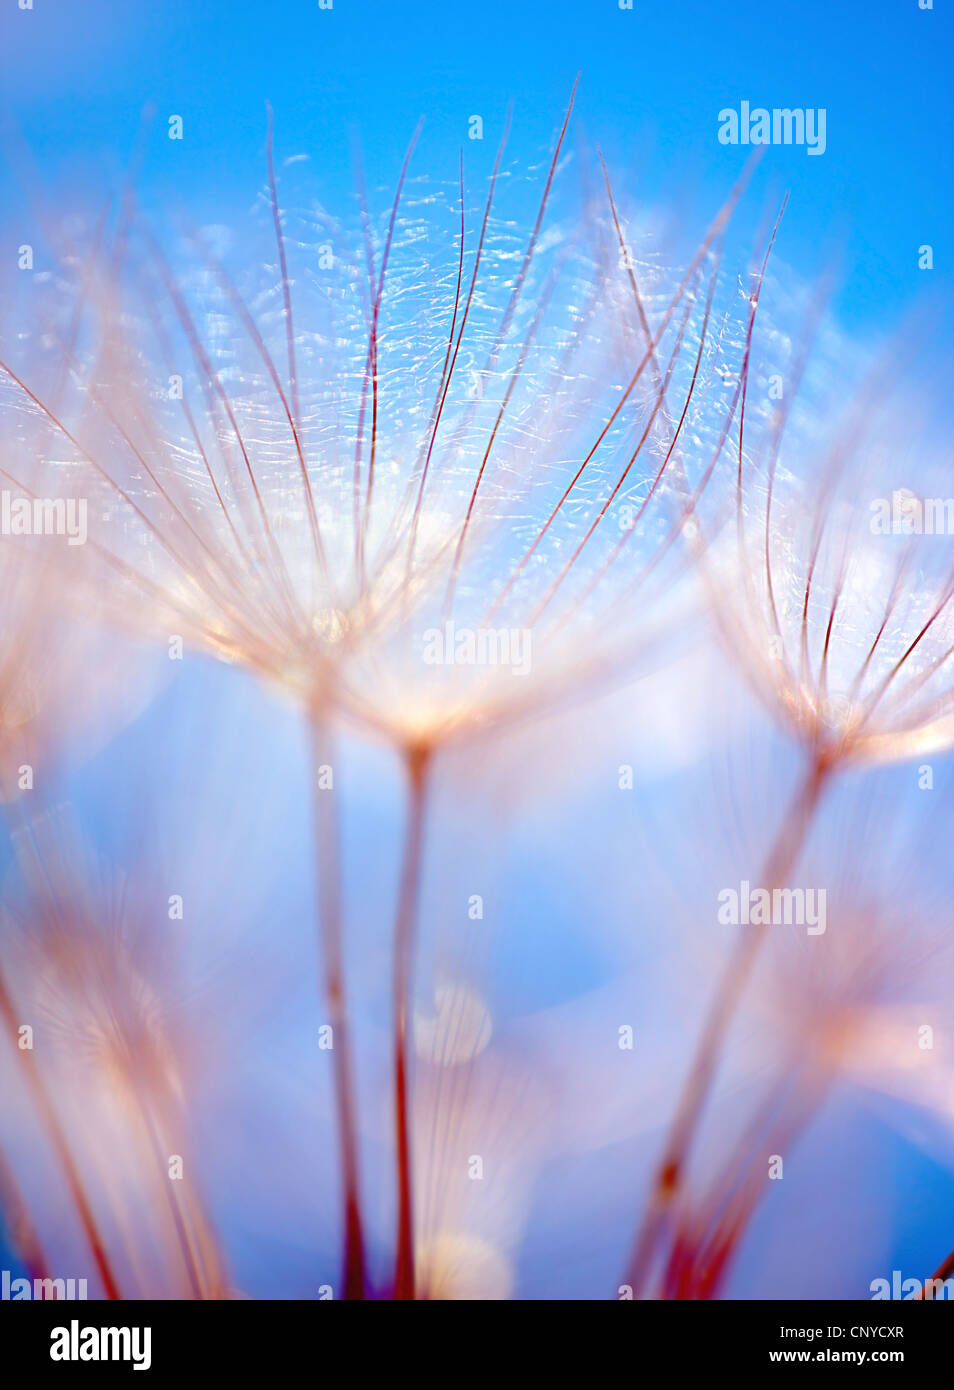 Abstract dandelion flower over blue sky background, extreme closeup with soft focus, beautiful spring nature details - Stock Image